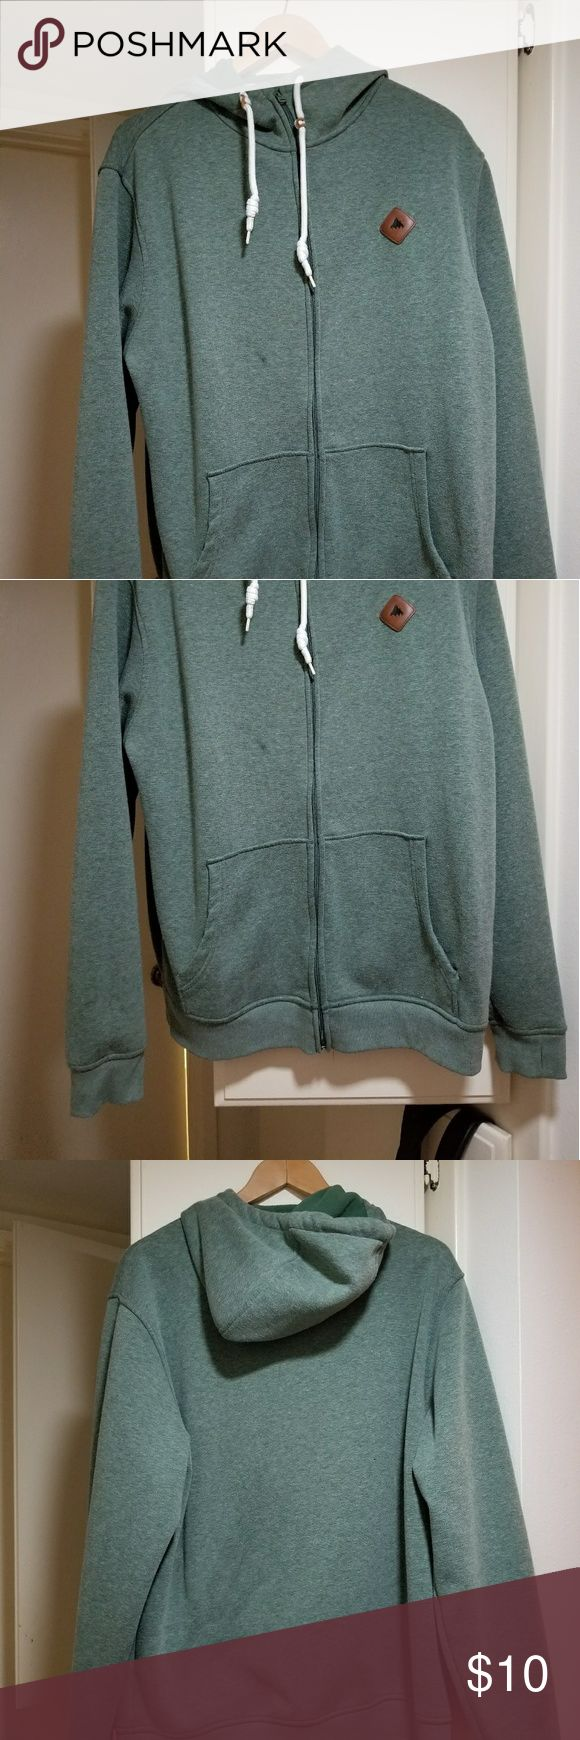 Burton jacket Men's XL dry ride Burton jacket. Faded green color . In good condition only sign of use is small blemish on front which is why I'm selling it for so cheap. I used flash so it's noticible, not as noticible without flash. Burton Jackets & Coats